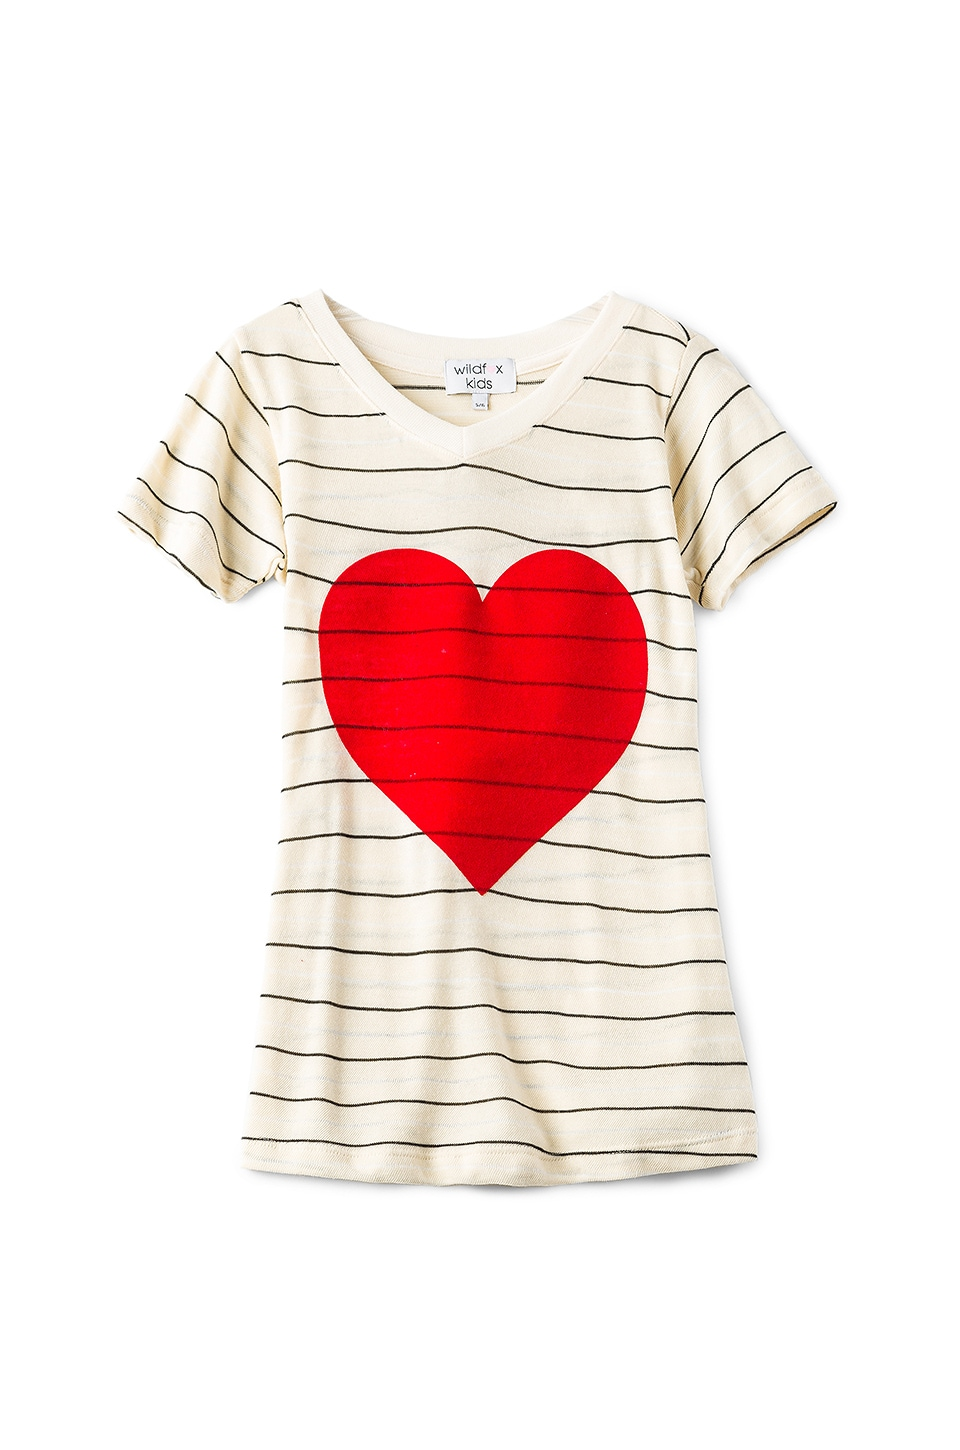 Tourist Vintage Hearts Top